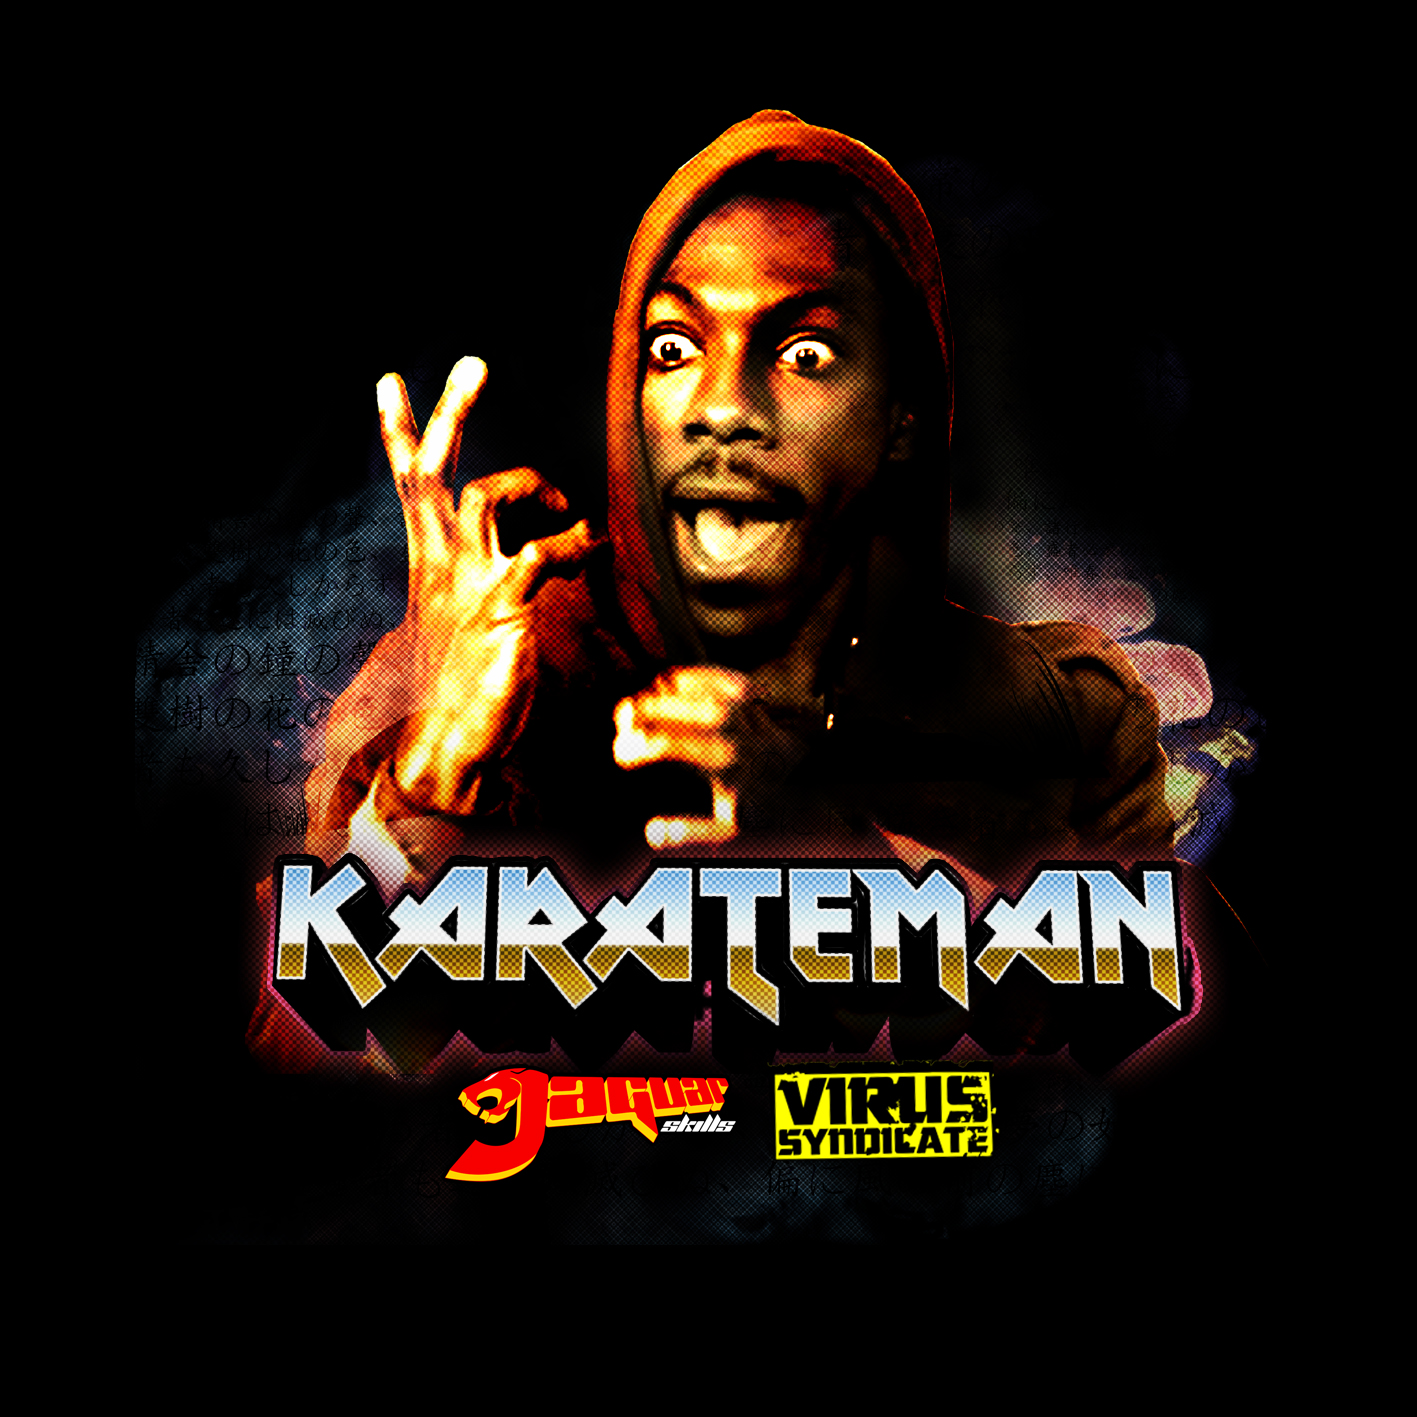 KARATE MAN FINAL FRONT COVER